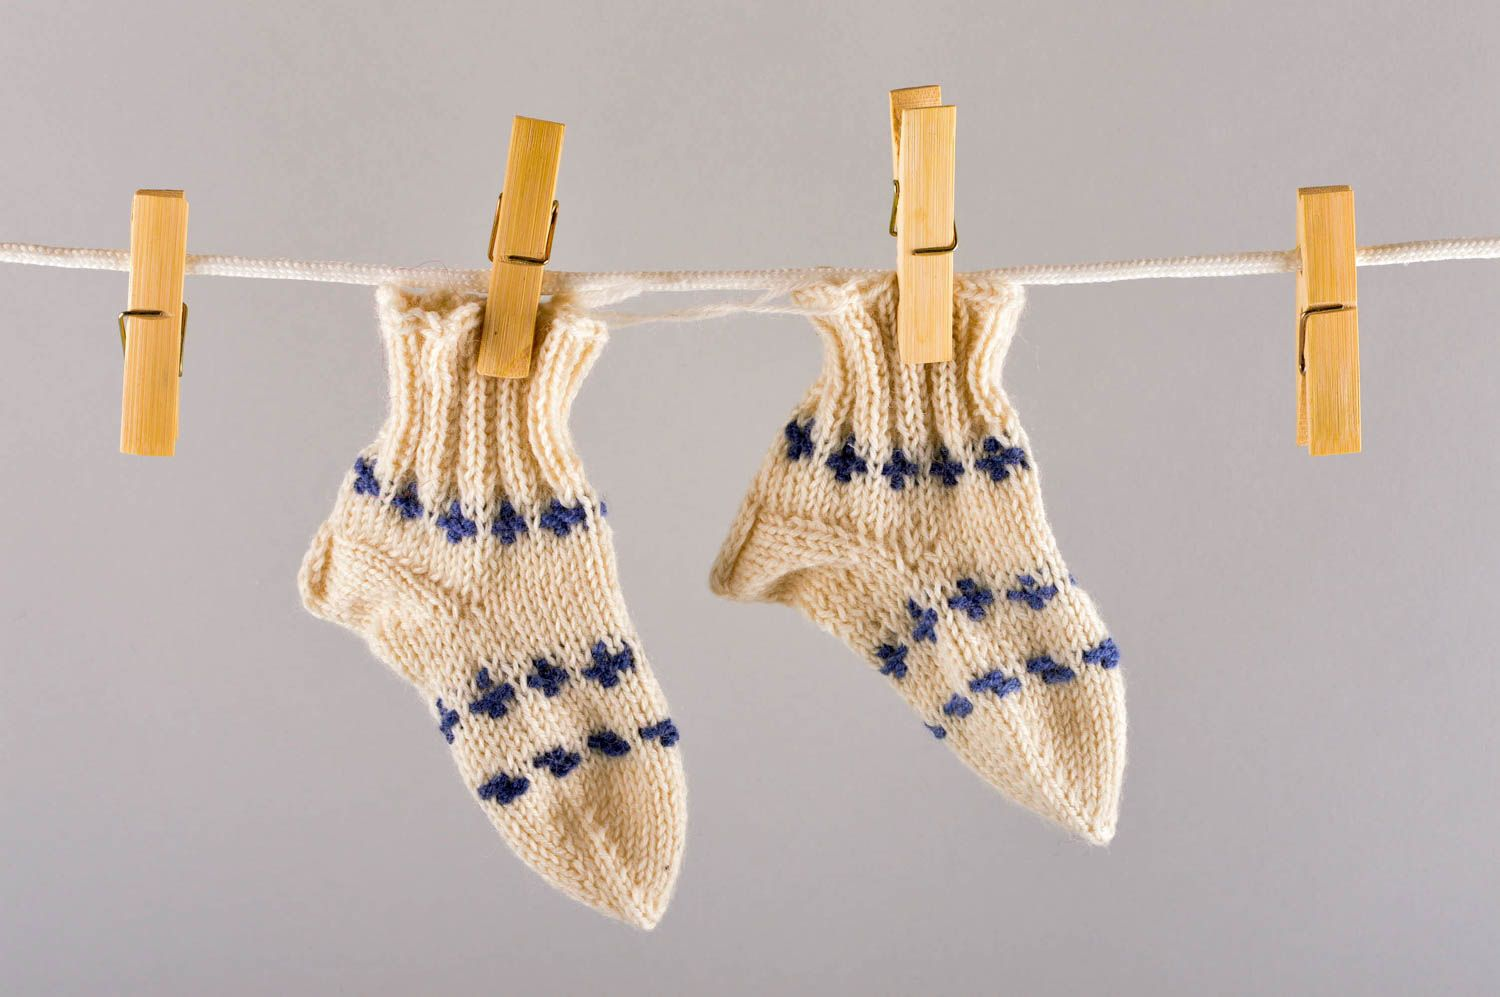 Notice: Undefined variable: cat in /home/newmadeheart/prod/cache/volt/%%home%%newmadeheart%%prod%%app%%views%%product%%index.volt.php on line 139  Beautiful handmade knitted socks childrens warm socks accessories for kids - MADEheart.com